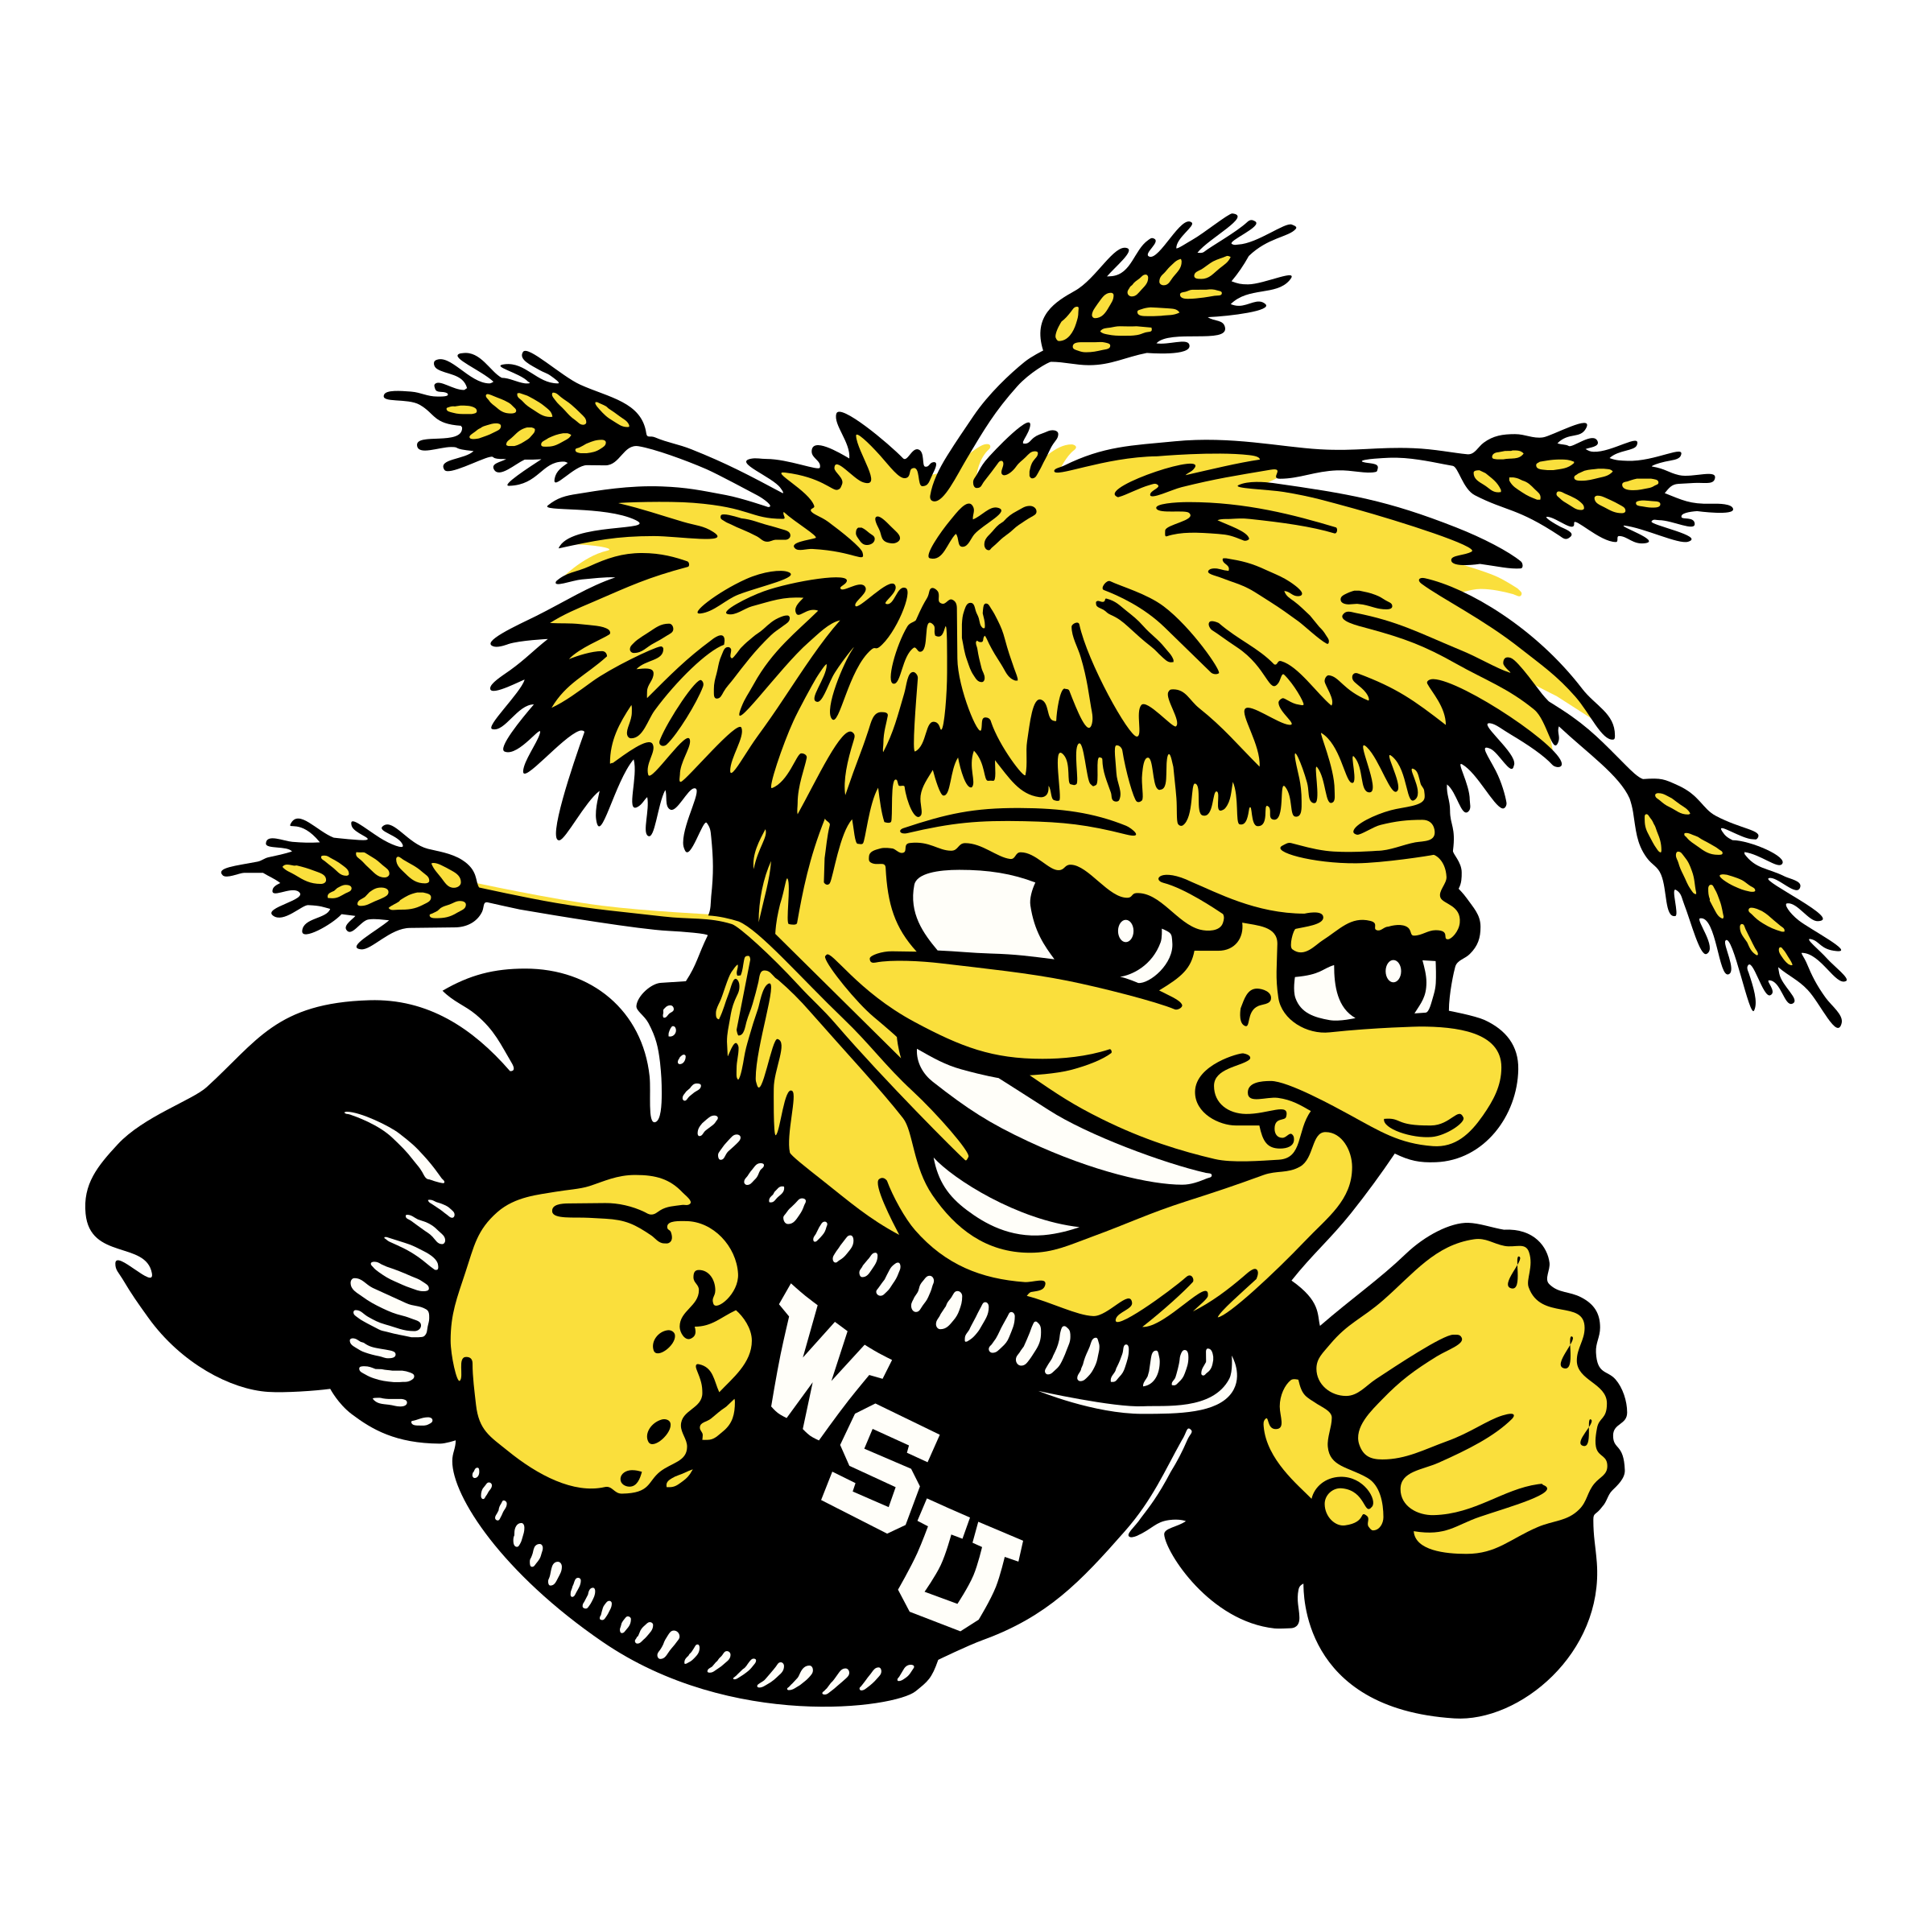 Wichita State Shockers Logo PNG Transparent & SVG Vector.